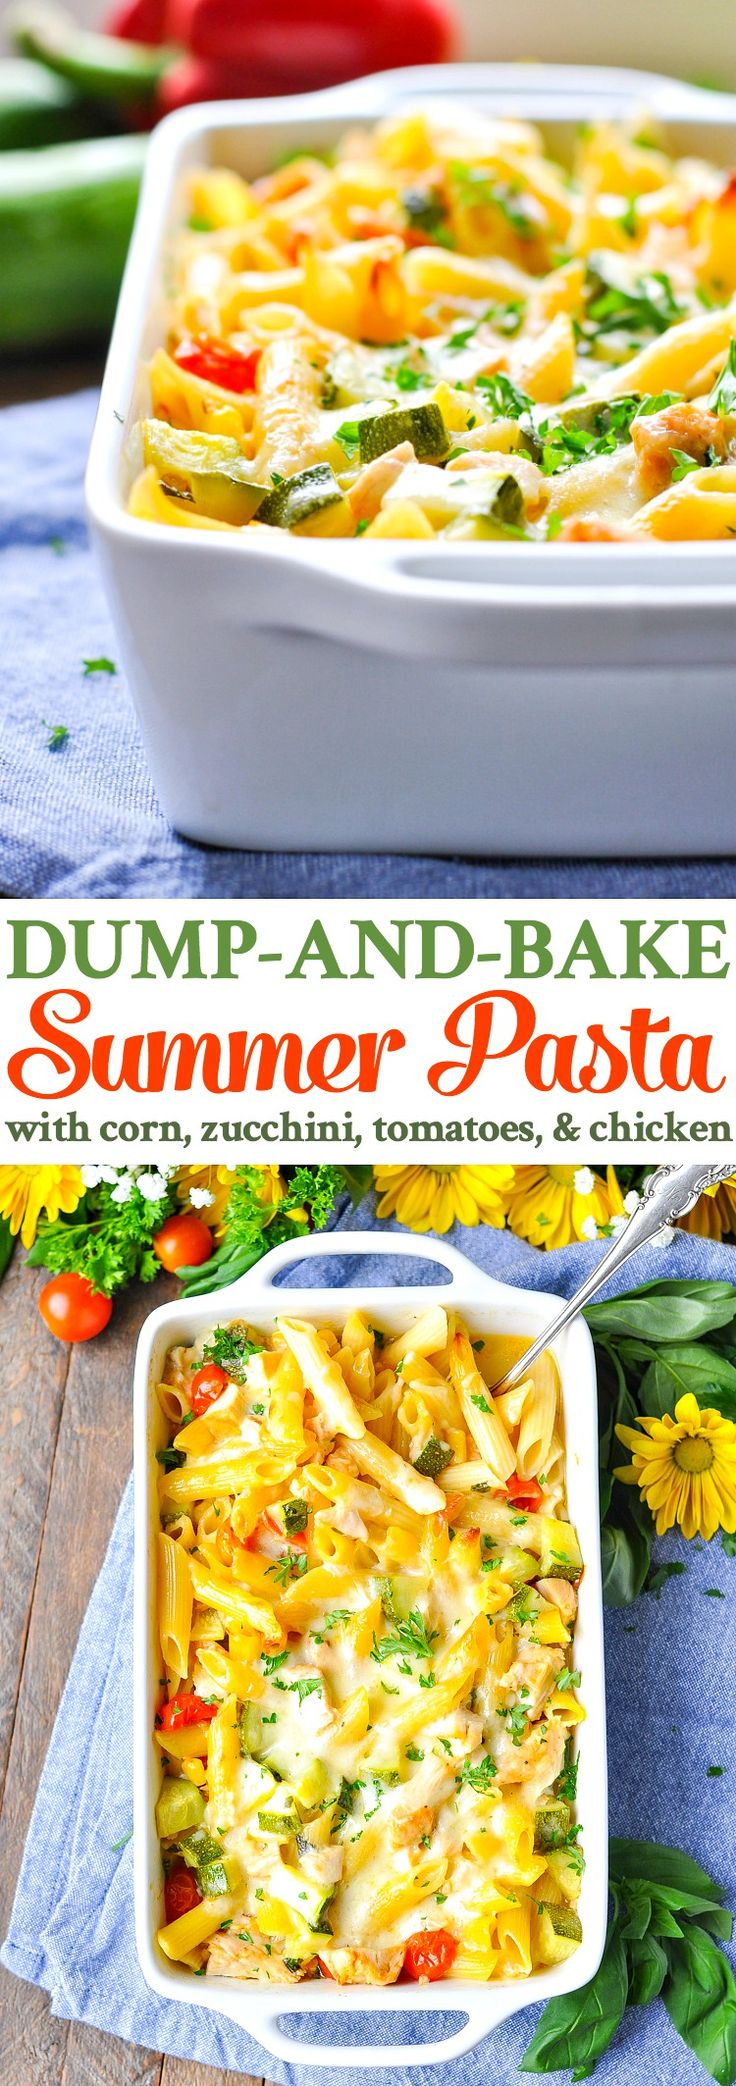 Dump-and-Bake Summer Pasta with Corn, Zucchini, Tomatoes, and Chicken! http://healthyquickly.com